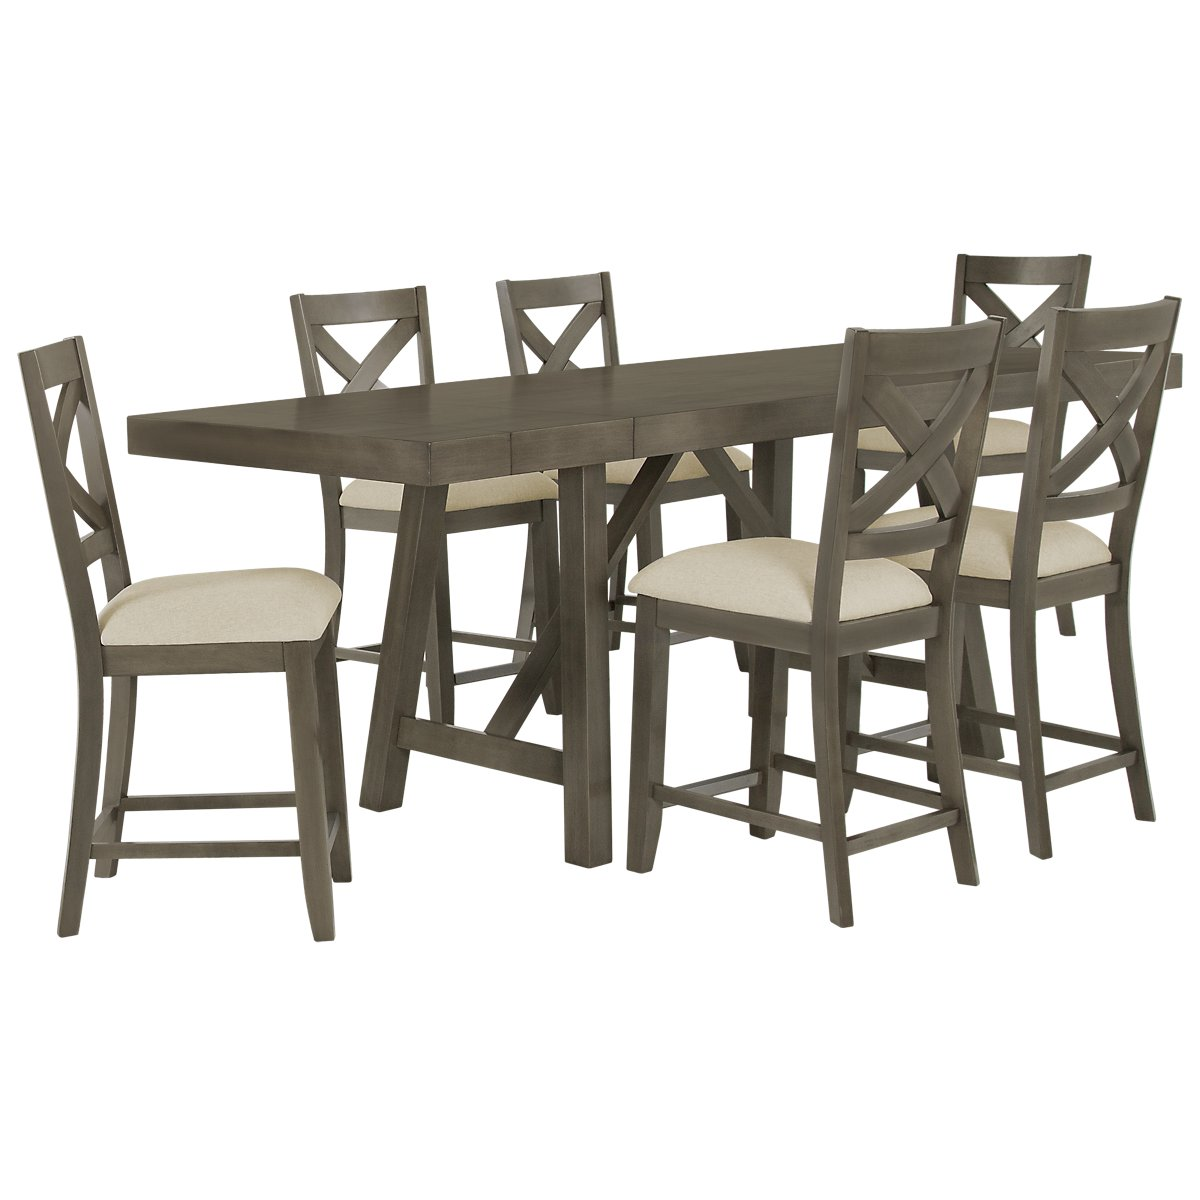 Omaha Gray Wood High Table & 4 Wood Barstools